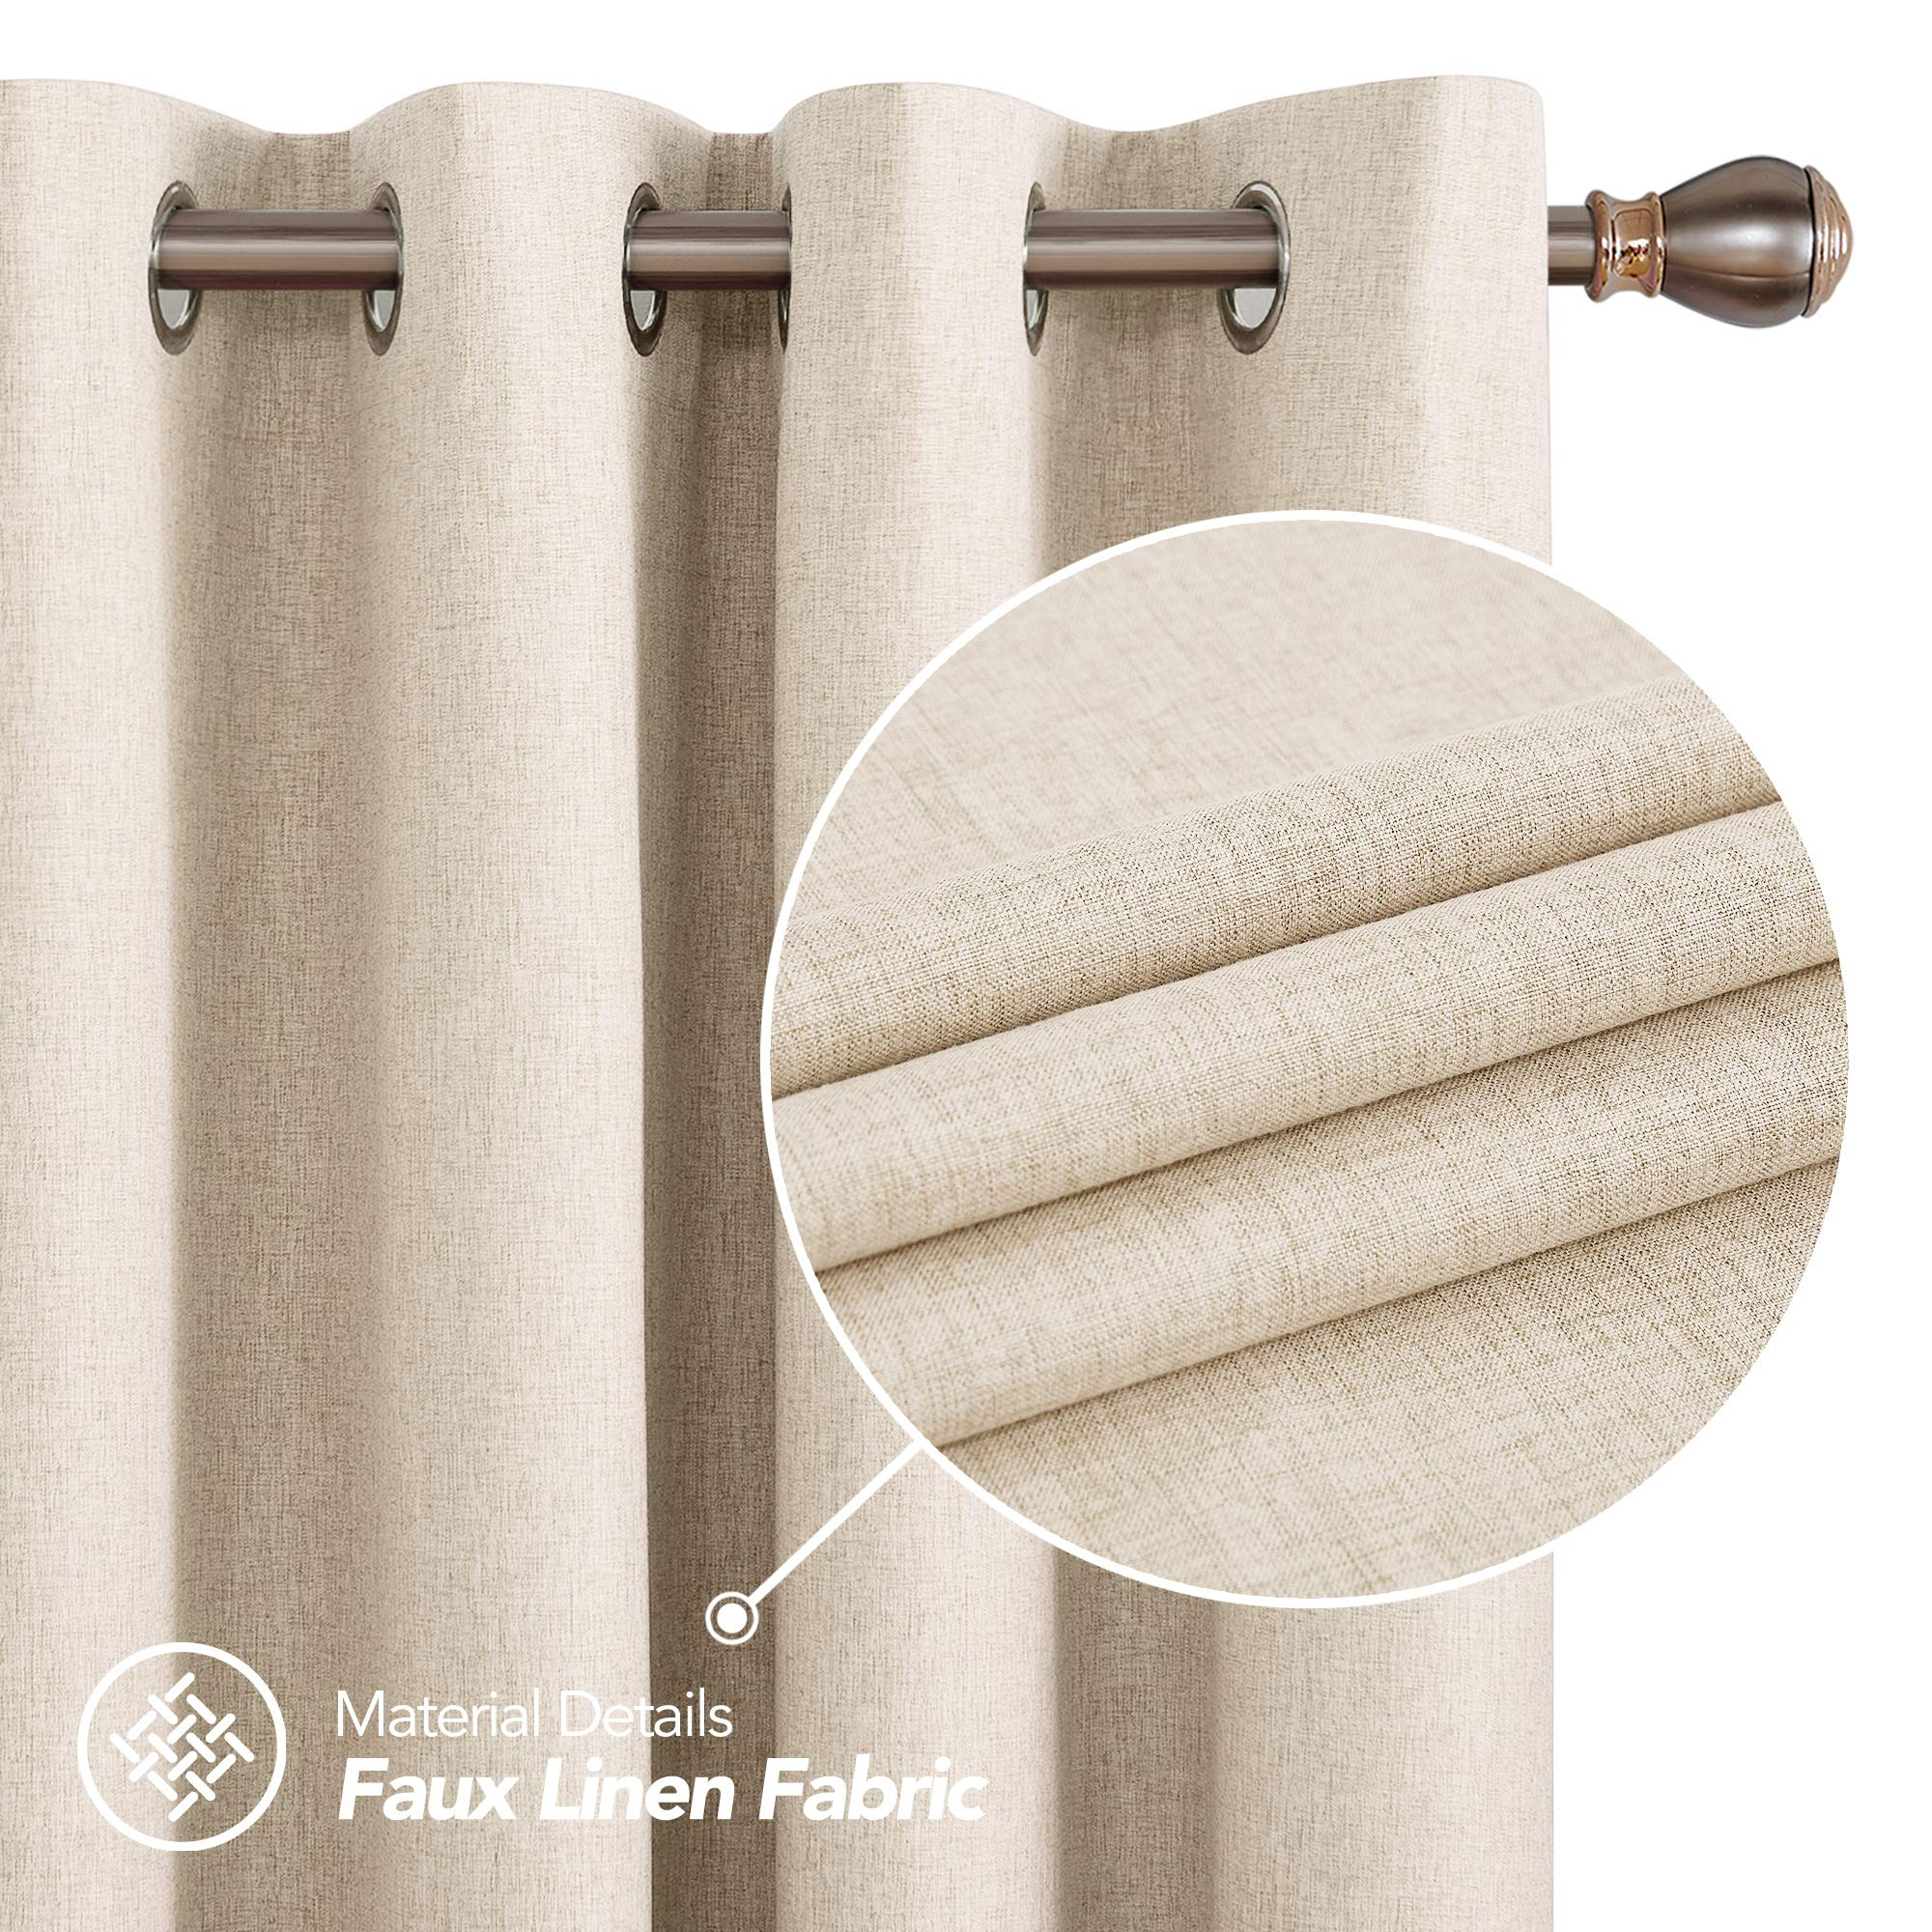 Deconovo Faux Linen Full Blackout Curtains with Coating Sound Reduction Energy Saving Curtains for Living Room Flaxen 52W x 84L Inch 2 Panels